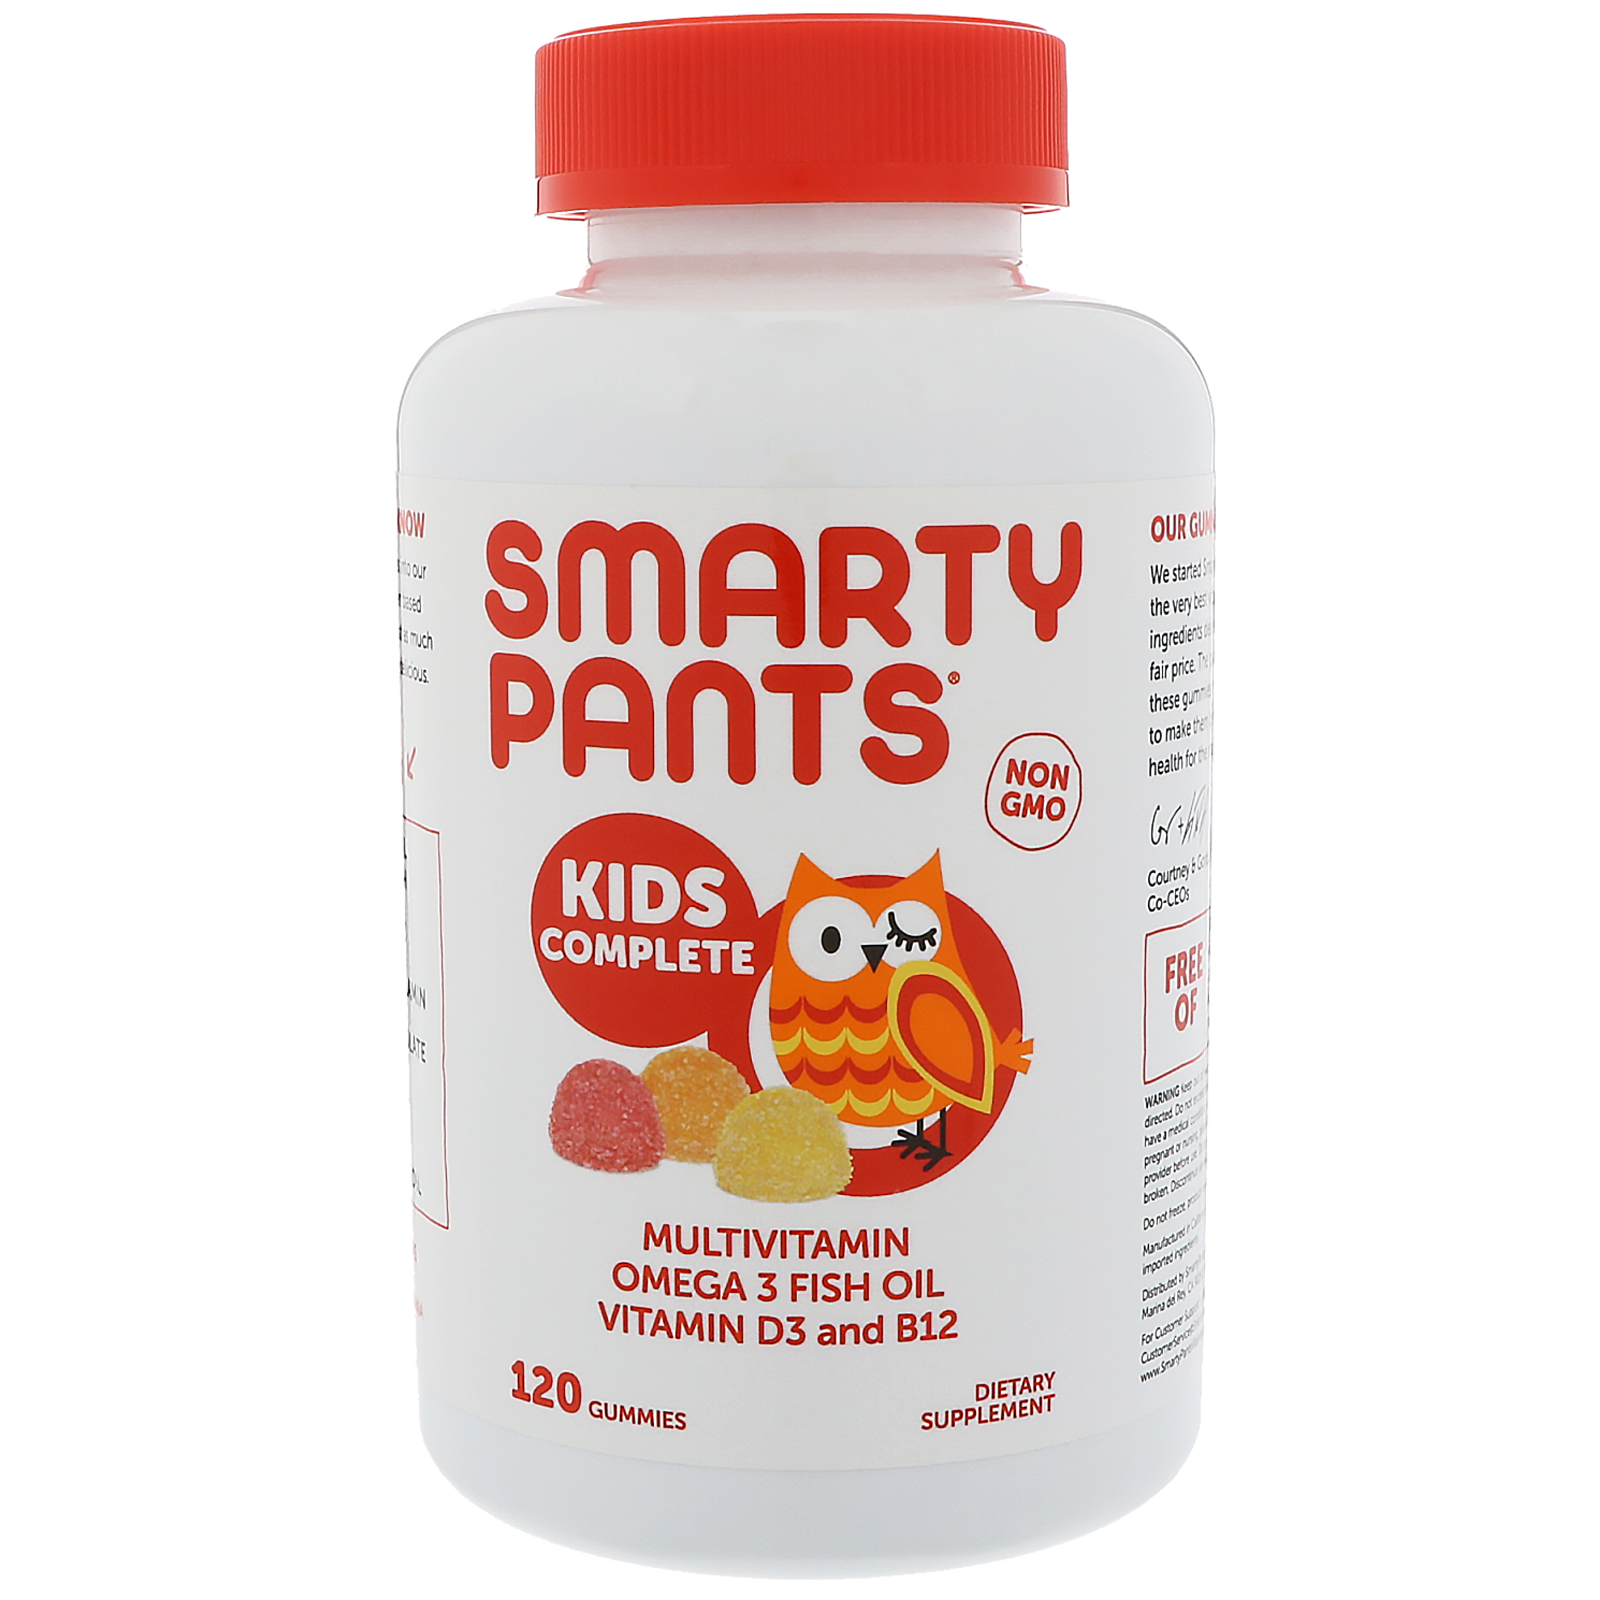 Smartypants kids complete multivitamin omega 3 fish oil for Fish oil vitamin d3